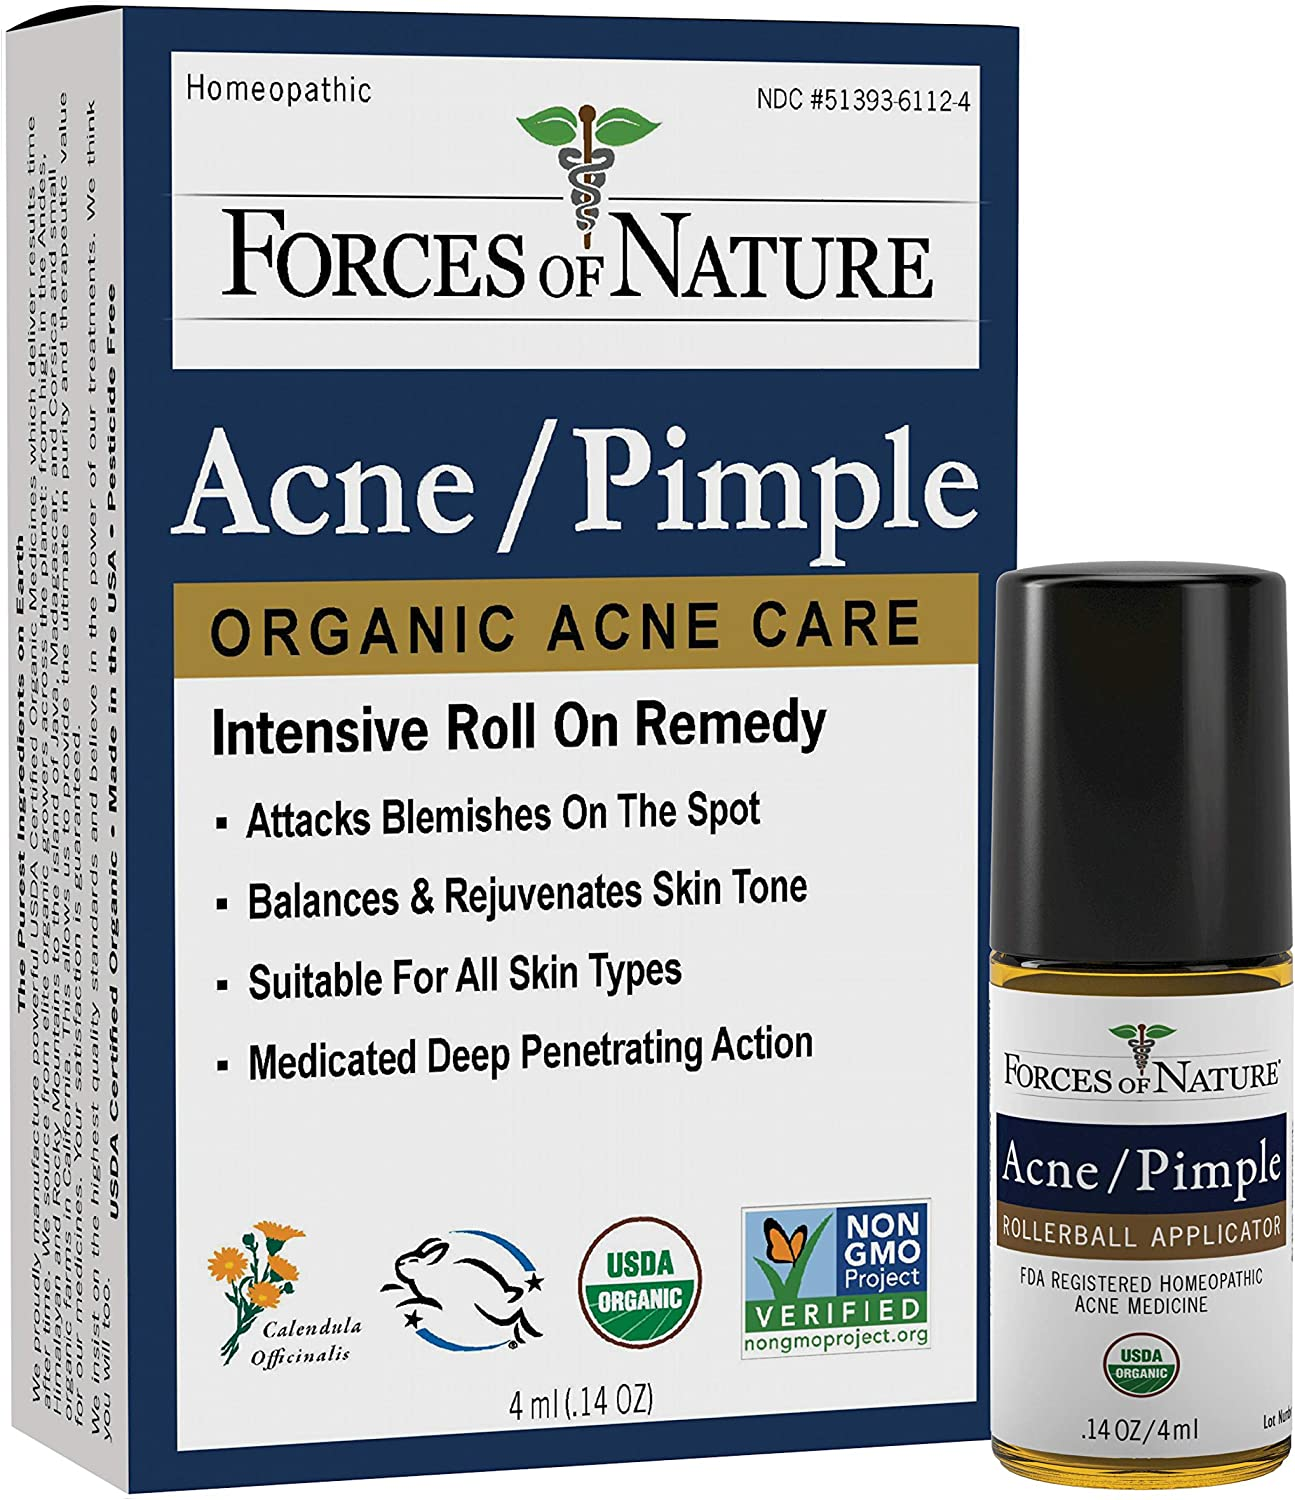 Forces of Nature - Natural, Organic Acne Skin Care Treatment (4ml) Non GMO, No Harmful Chemicals, Cruelty Free - Fight Acne, Clear Skin, Balance Skin Tone